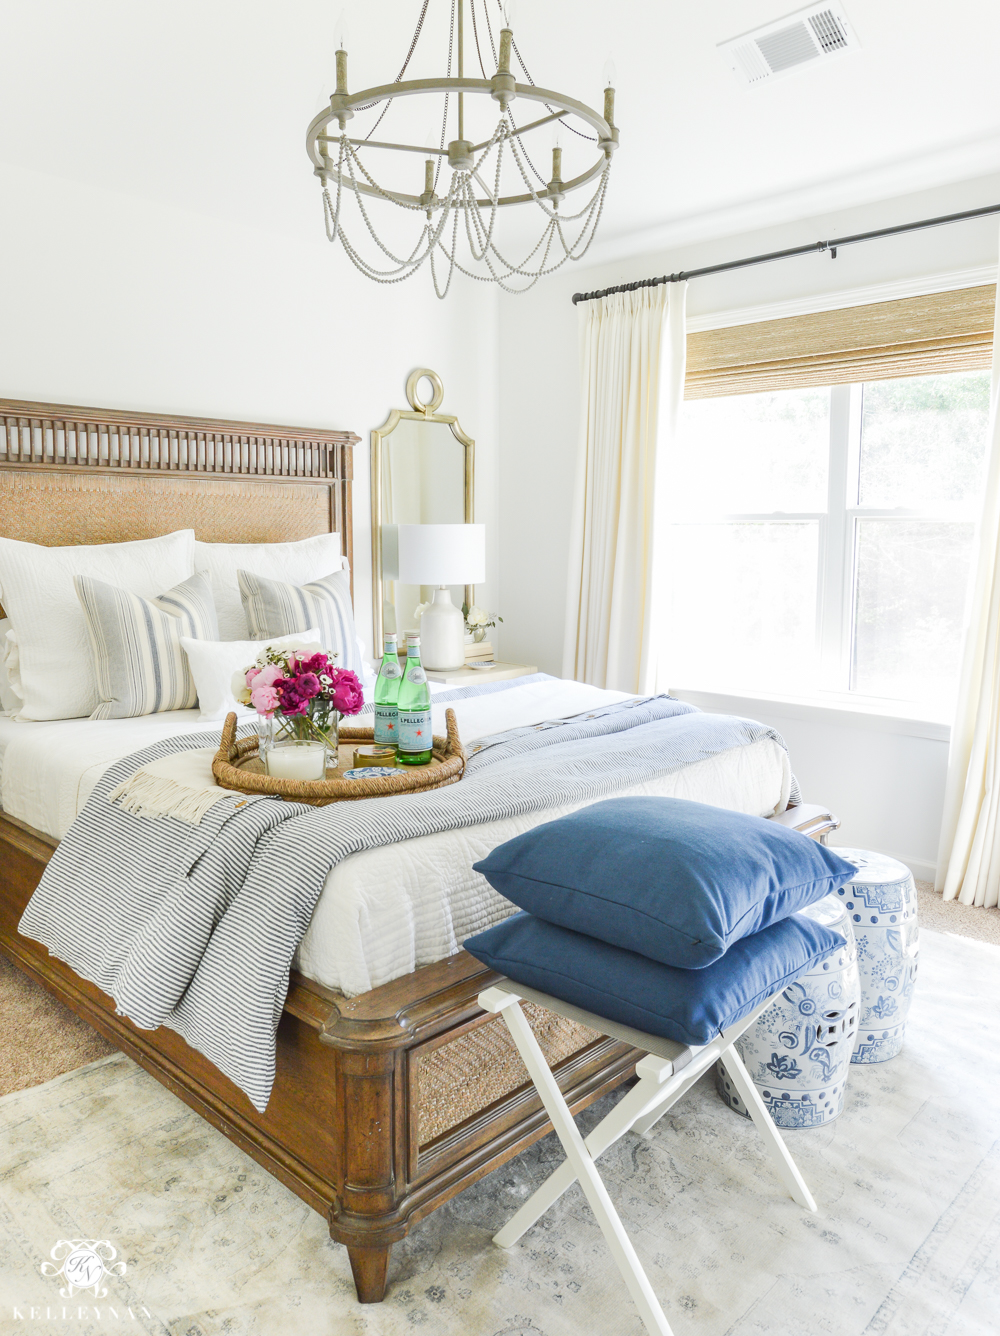 8 Guest Bedroom Essentials And Luxuries Your Company Will